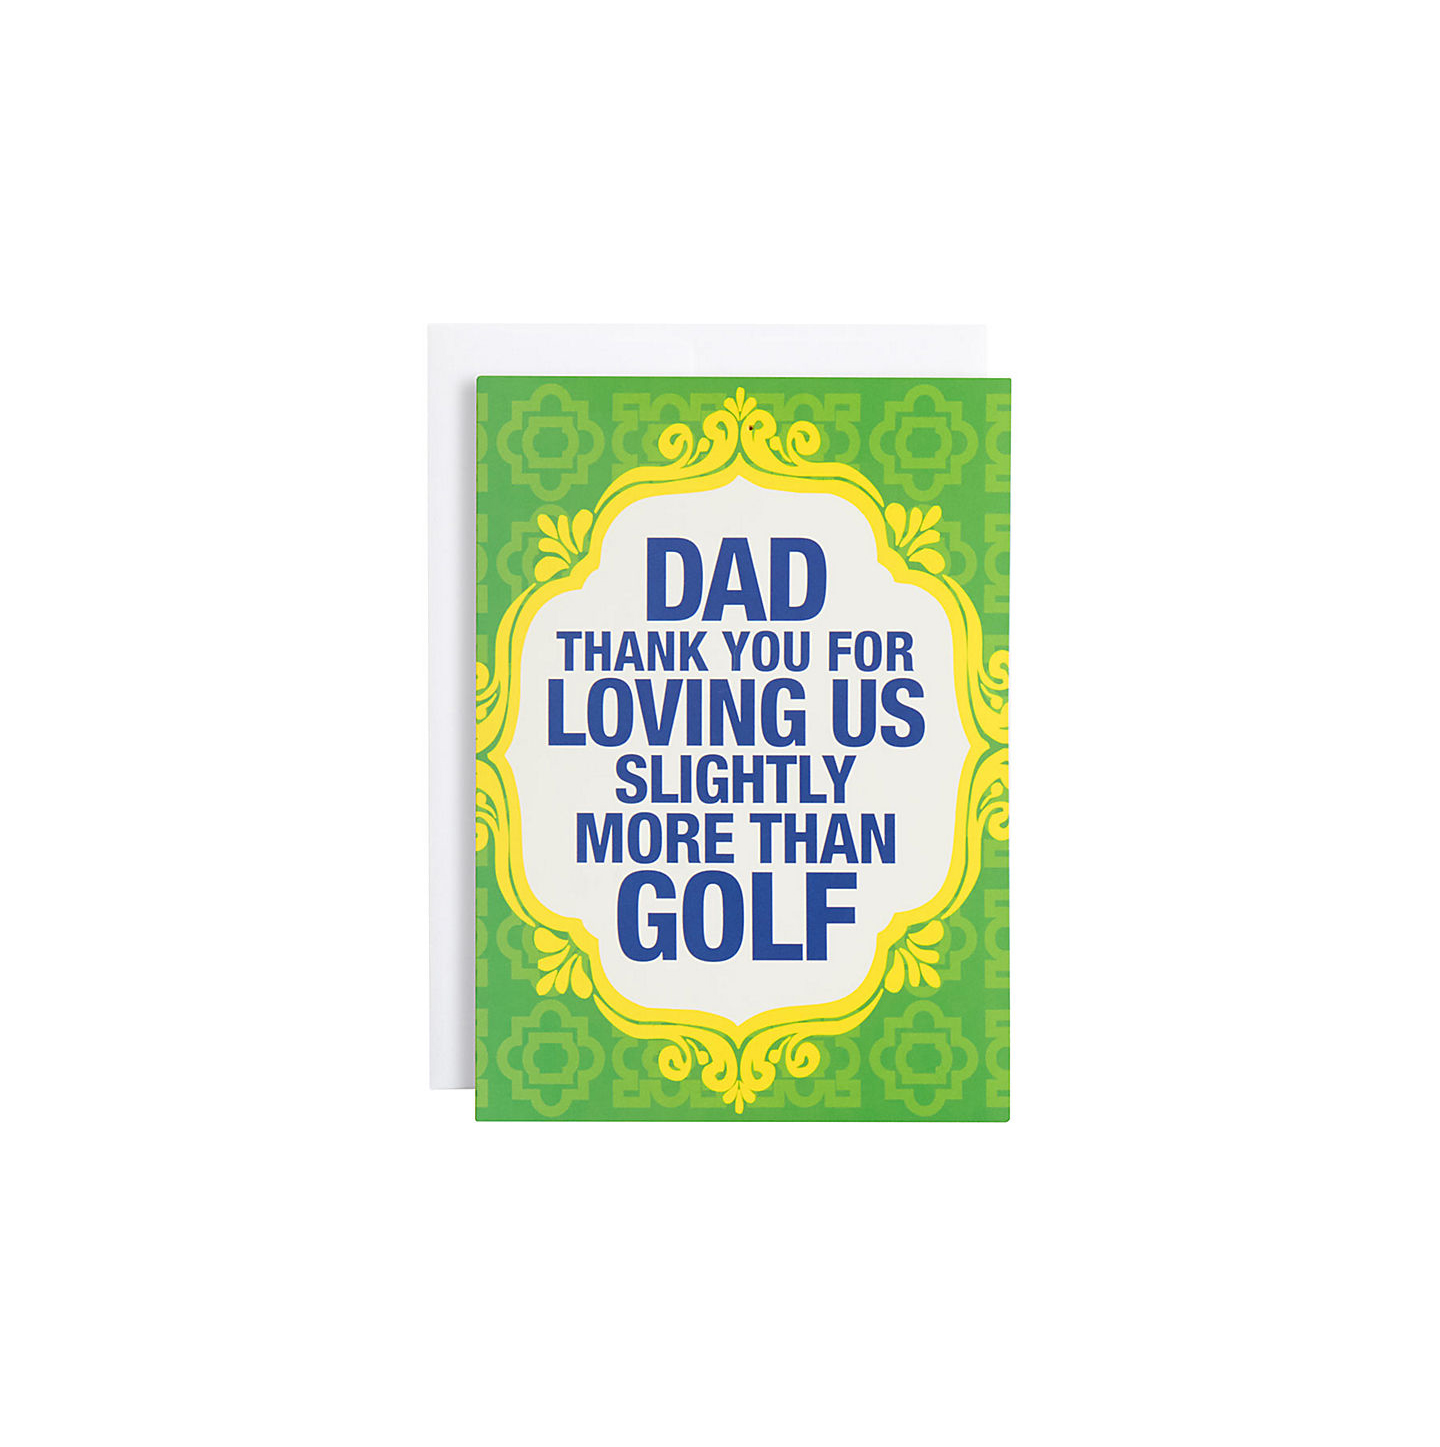 Funny Father's Day Cards | Real Simple